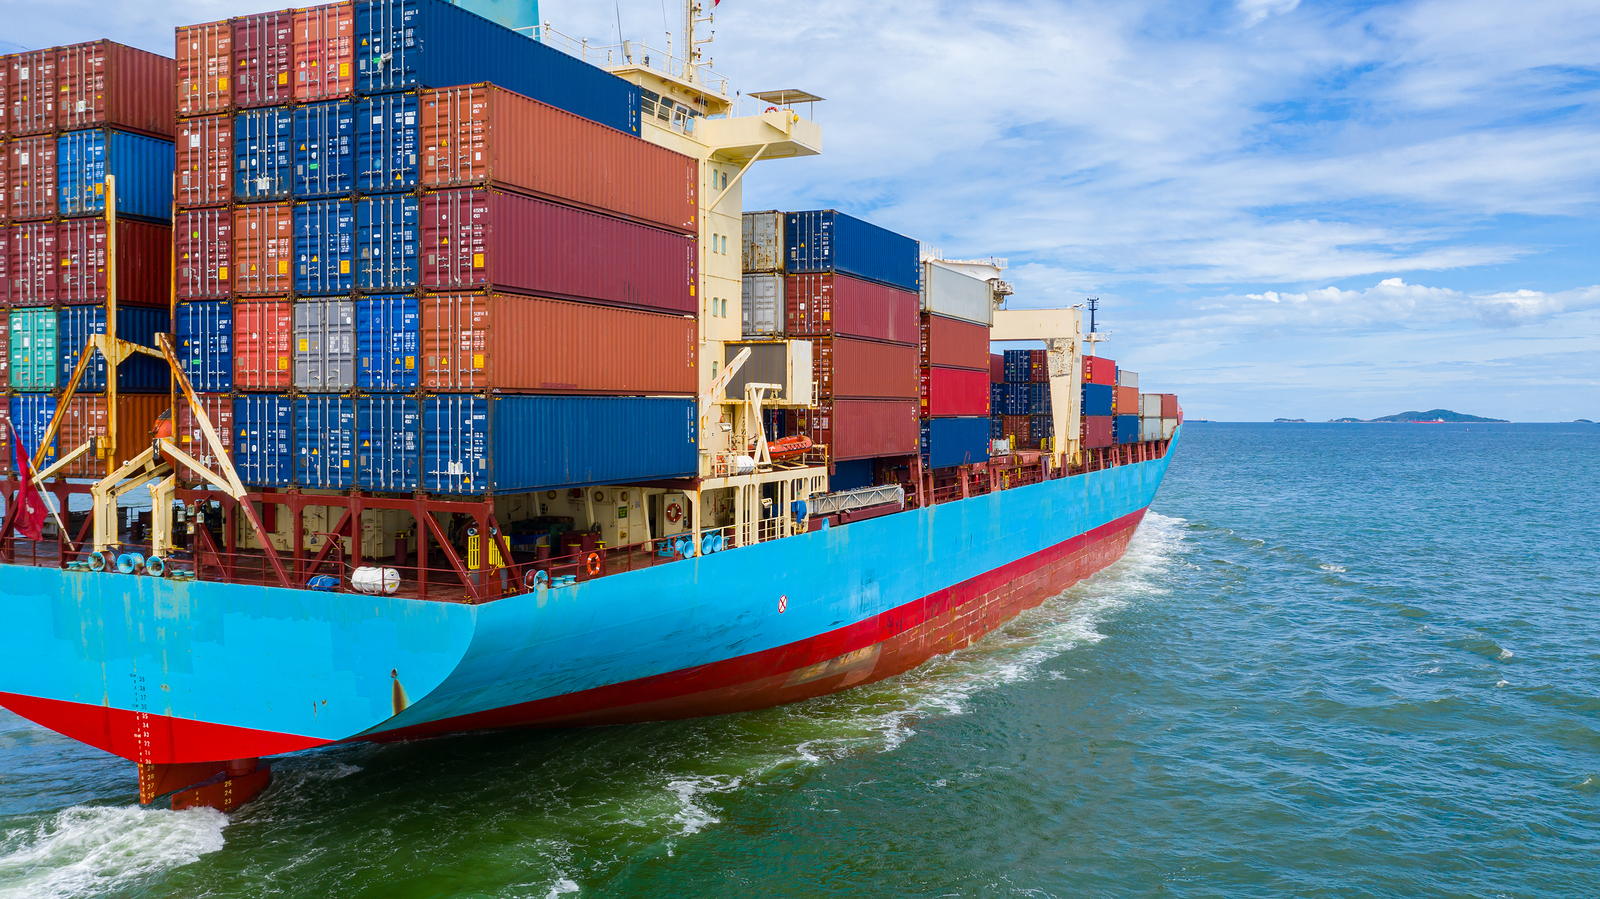 New report on role of biofuels in shipping launched at COP25 | Biofuels International Magazine